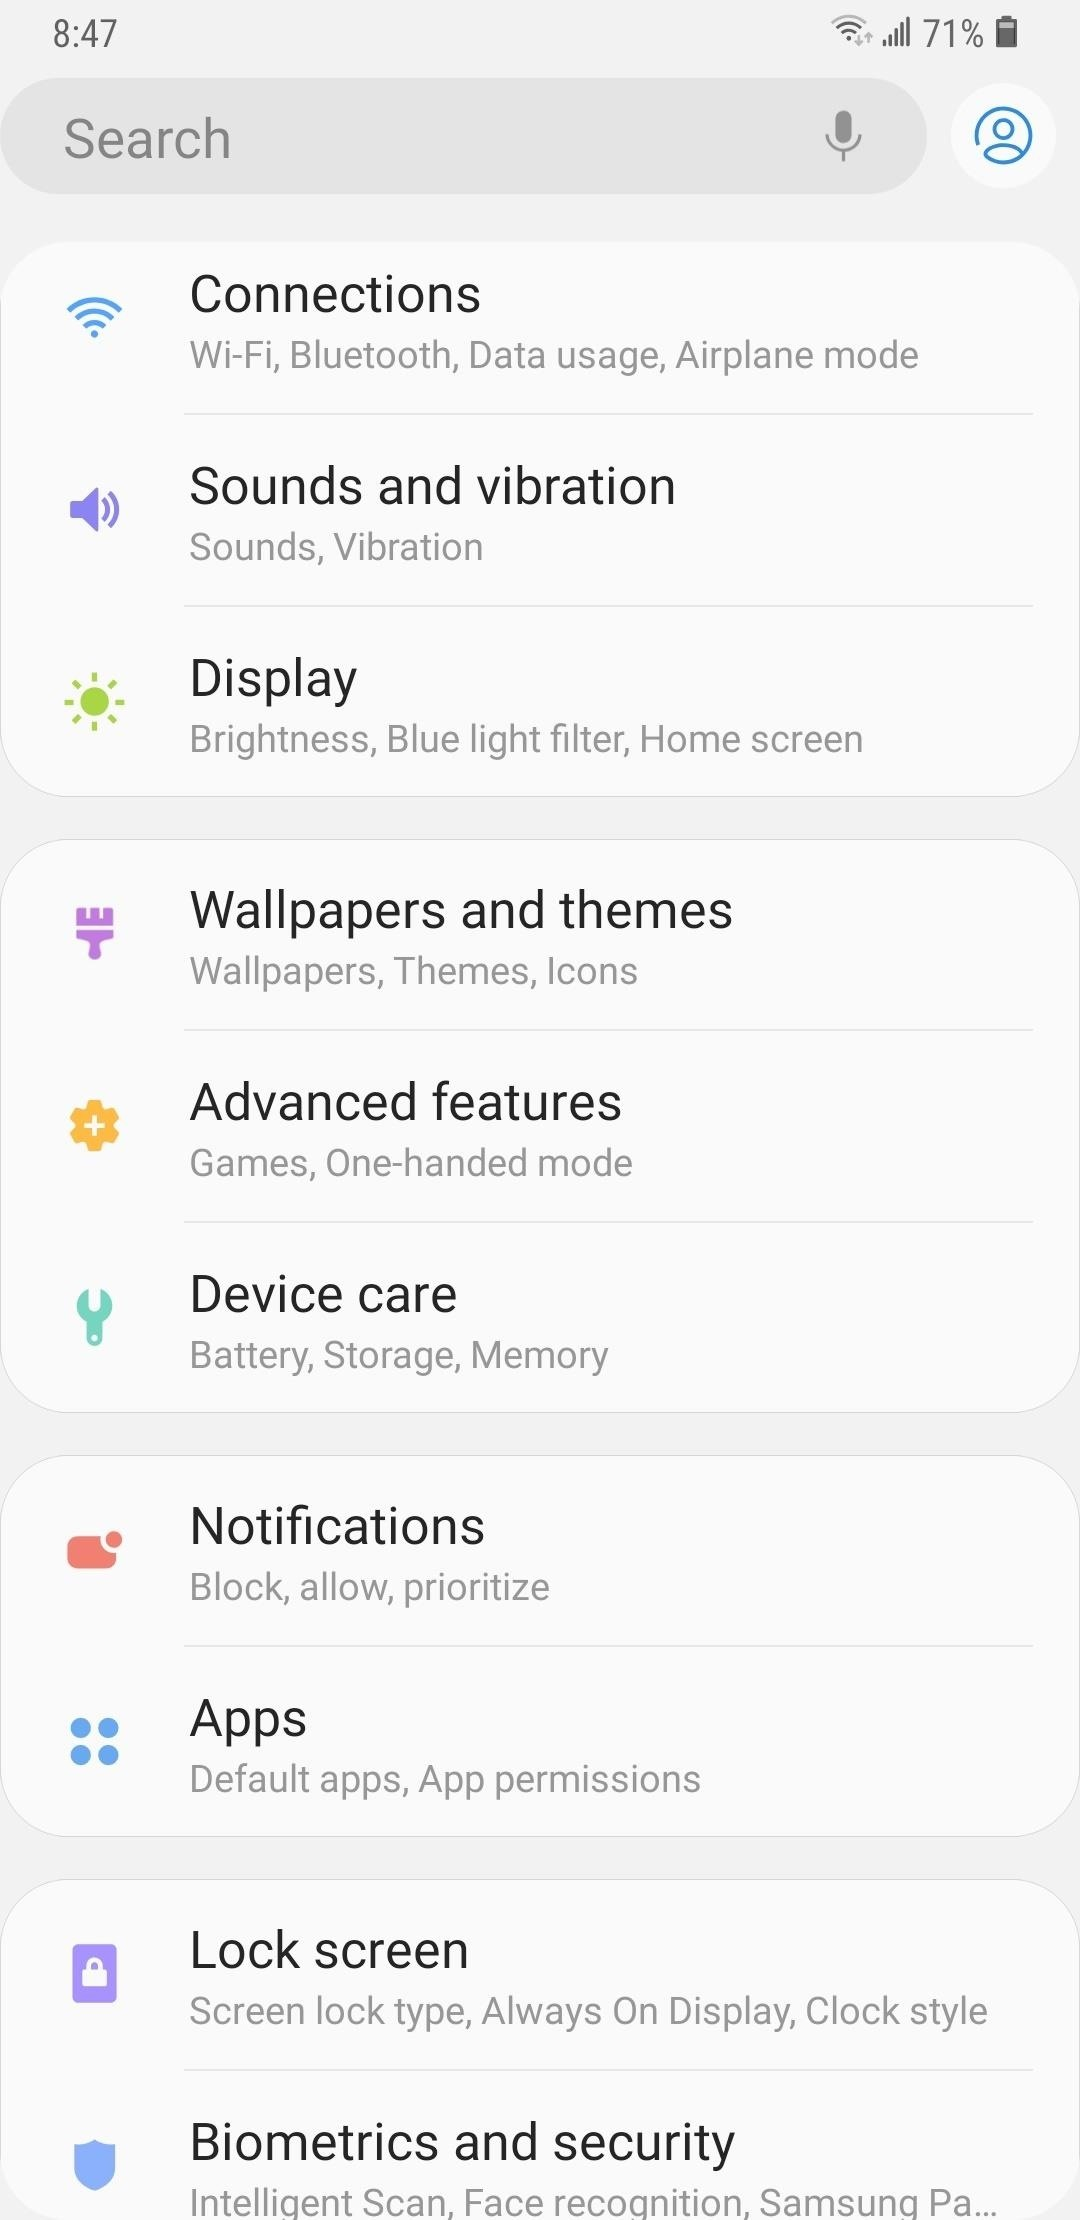 Samsung One UI Update: Settings Gets a Massive Redesign on Galaxy Devices